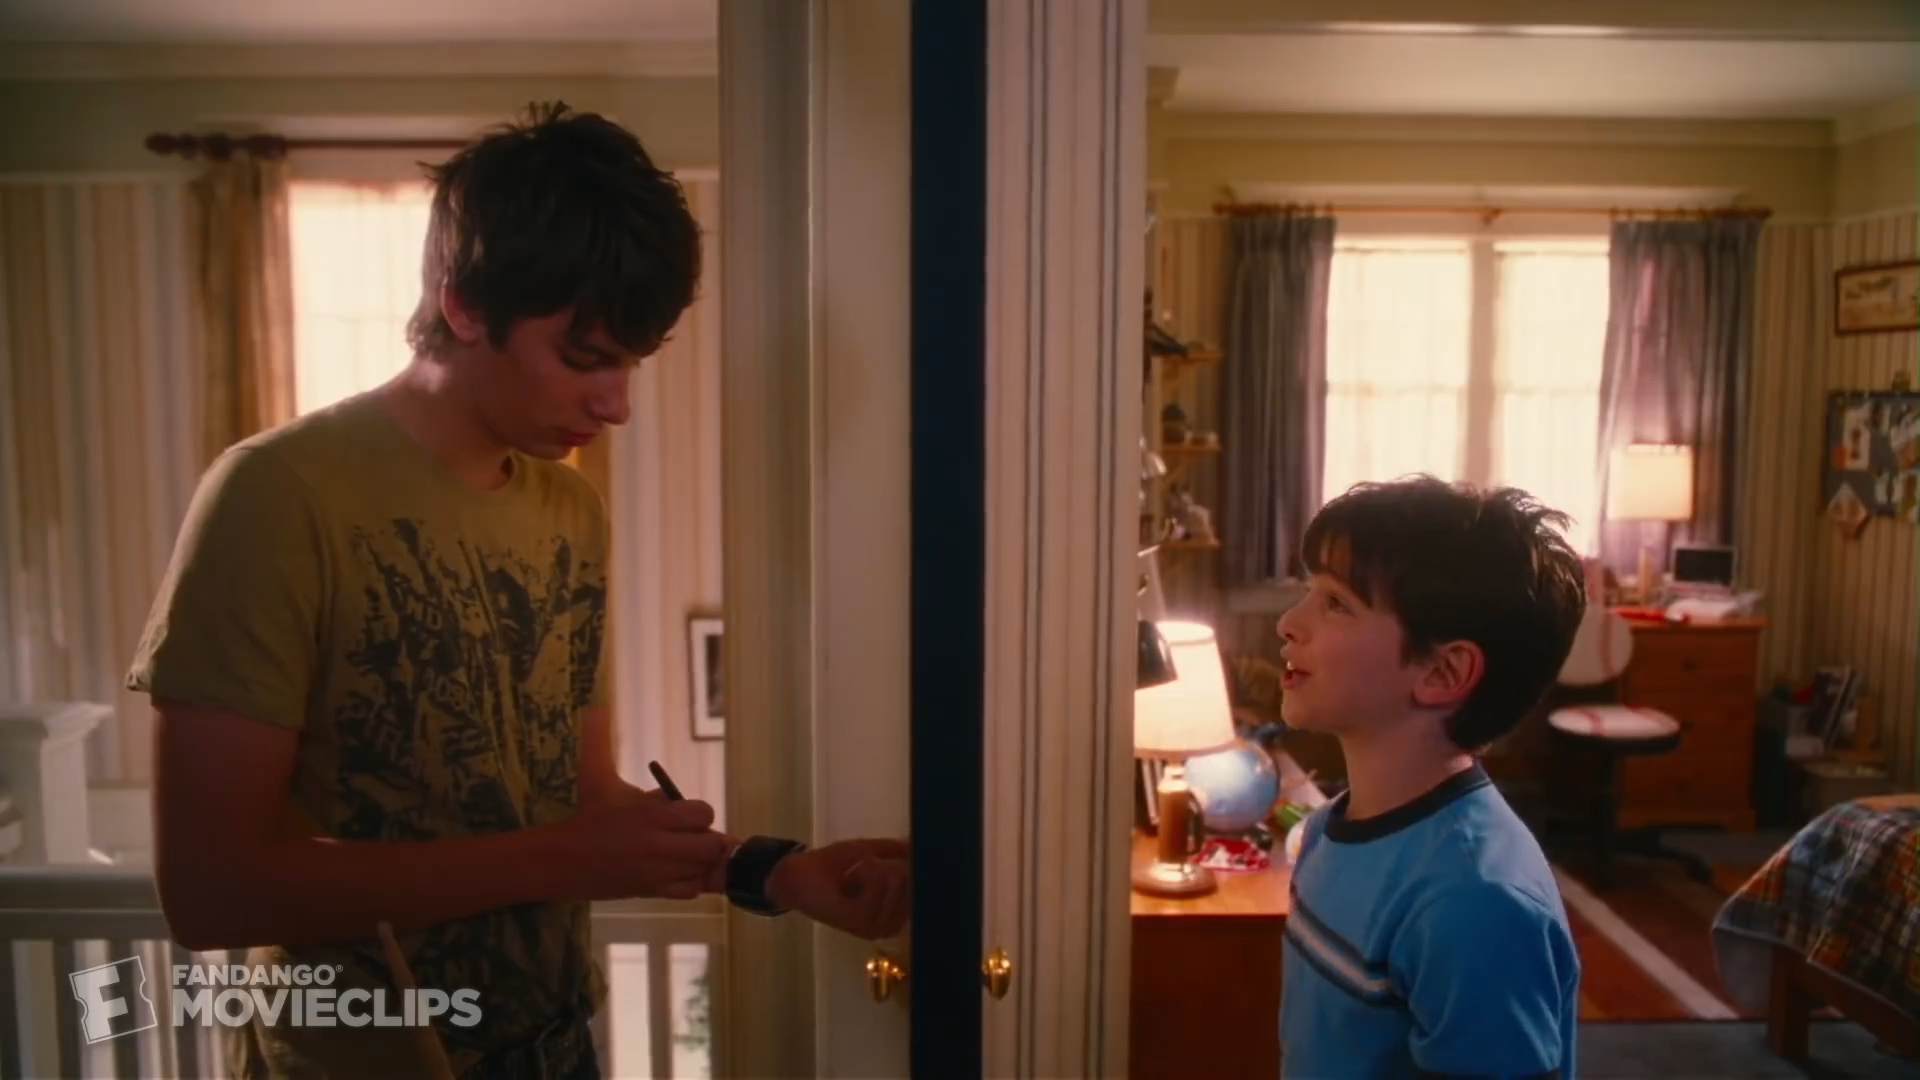 [1] Diary of A Wimpy Kid - Really have to pee